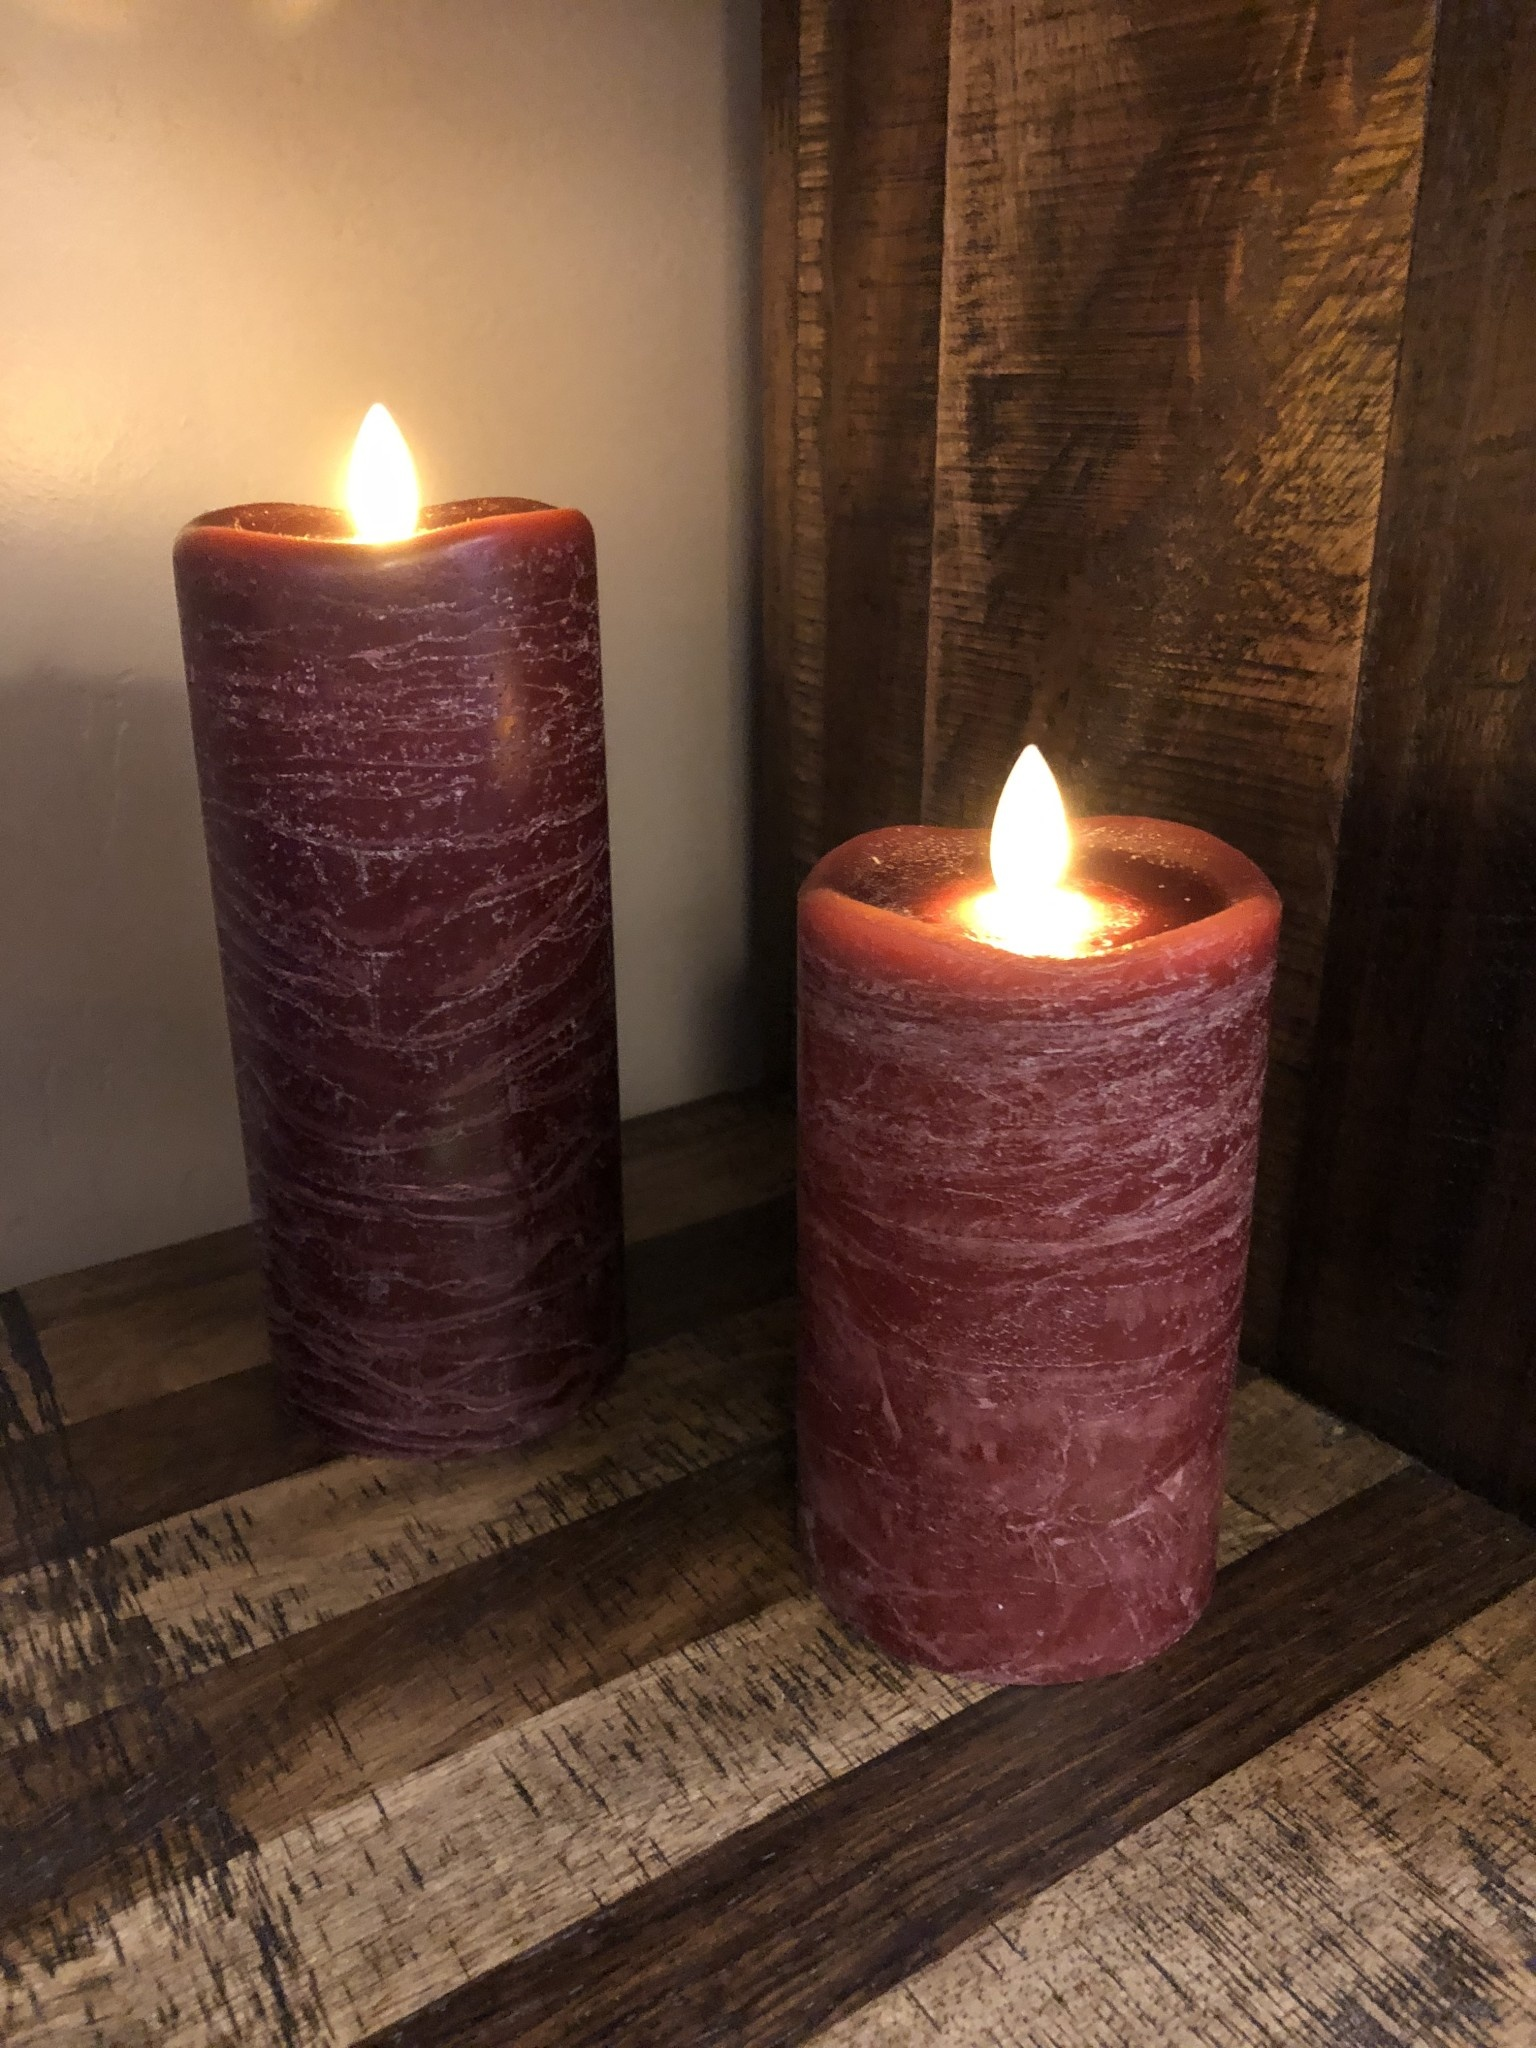 Sullivans Frosted Candle - Pomegranate - 3x5